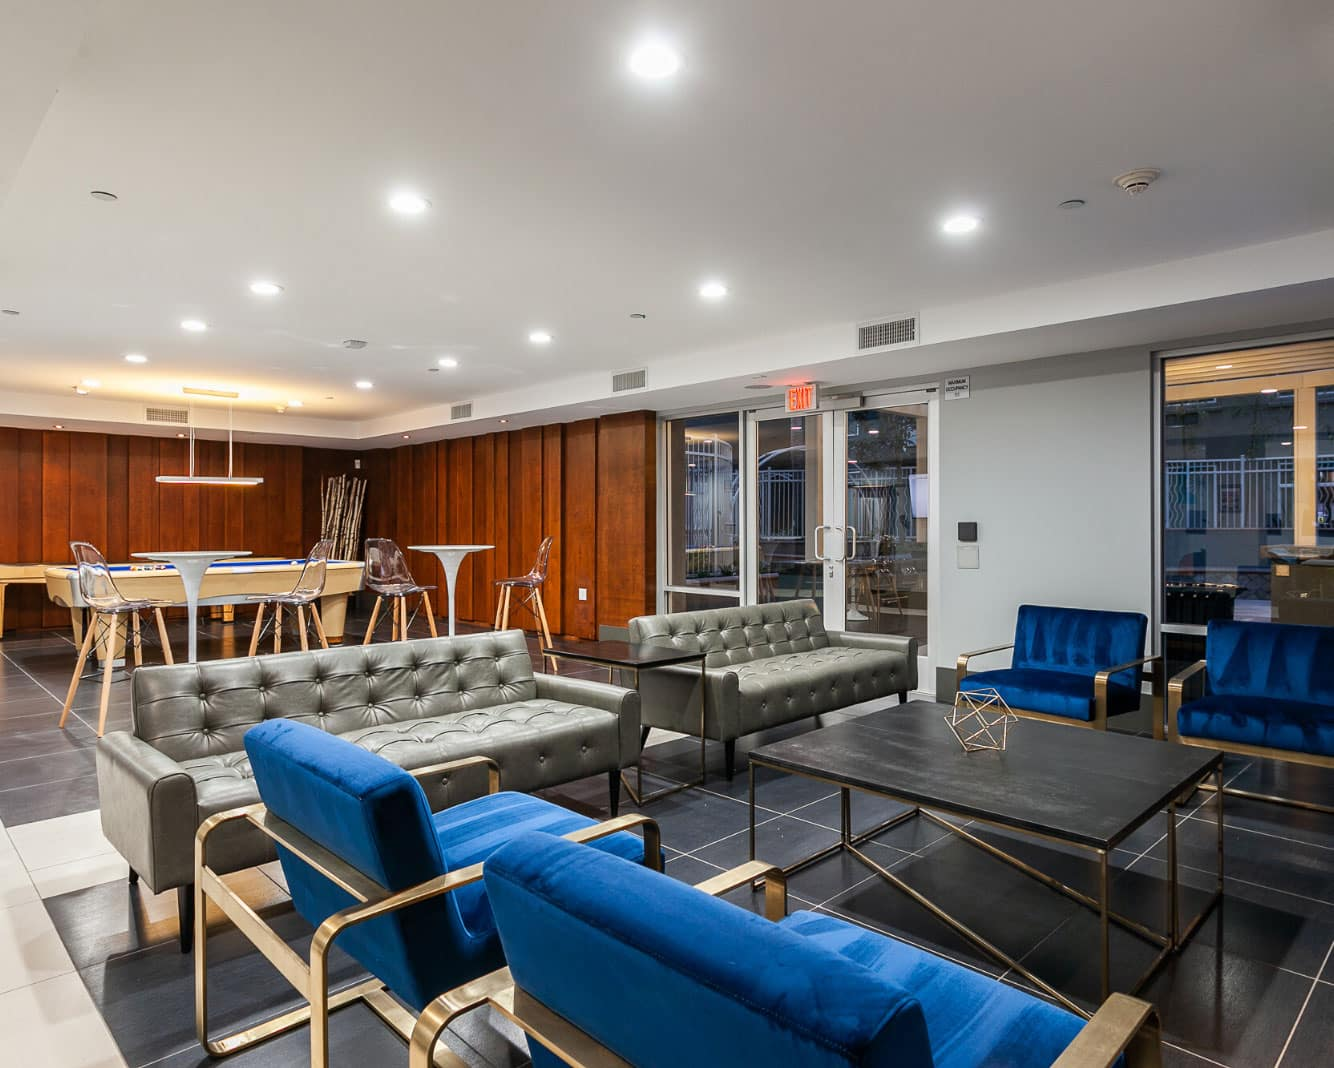 clubhouse with ping pong tables and seating